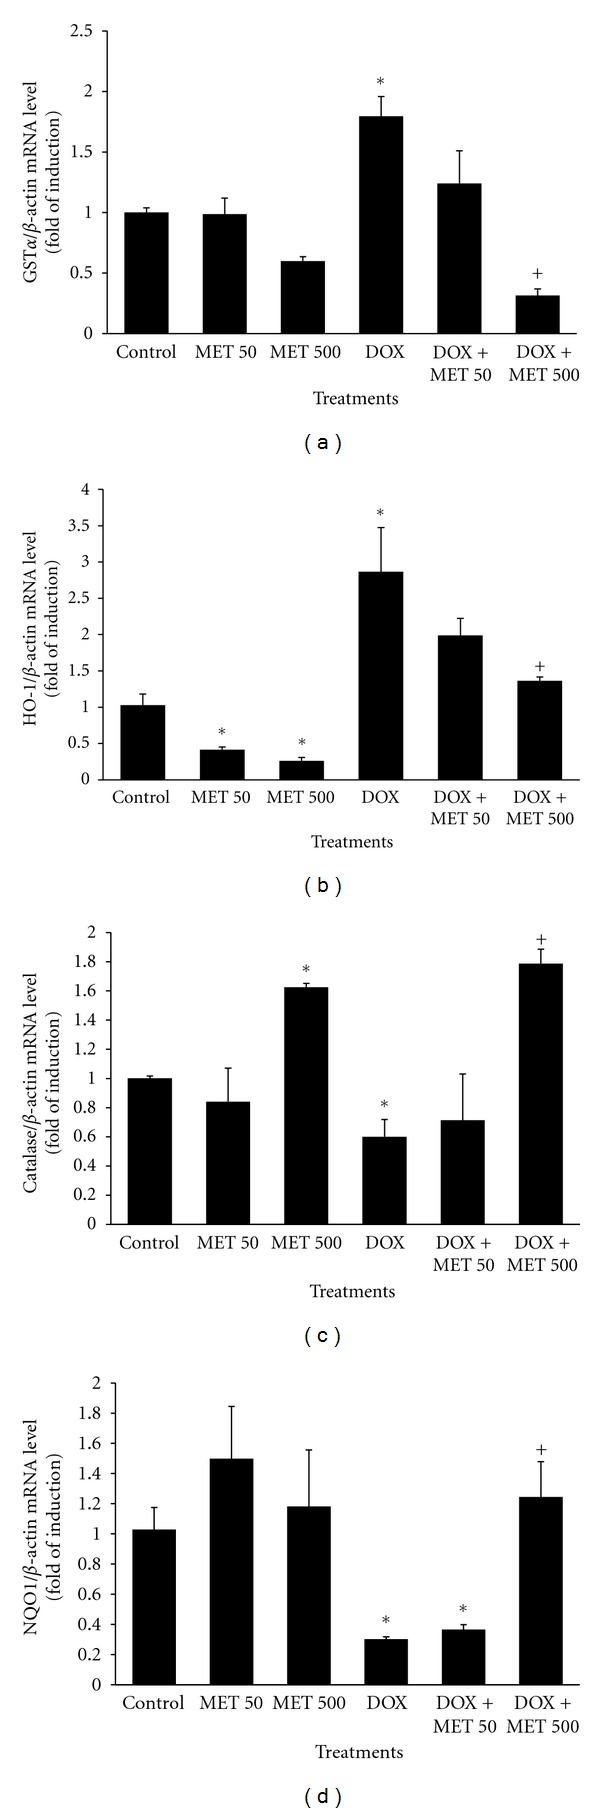 MET restores DOX-mediated changes in the levels of oxidative stress-related genes. Rats ( n = 10/treatment type) received normal saline, DOX in a total cumulative dose of 18 mg/kg, MET (50 or 500 mg/kg, p.o., daily), or DOX plus either dose of MET. 24 h after receiving the last dose of DOX, total RNA was isolated from rat cardiac tissue using TRIzol methods and quantified spectrophotometrically at 260 nm. The mRNA levels of GST α (a), HO-1 (b), CAT (c), and NQO1 (d) were quantified using RT-PCR and normalized to β -actin housekeeping gene. Values represent mean of fold change ± SEM ( n = 10). * P